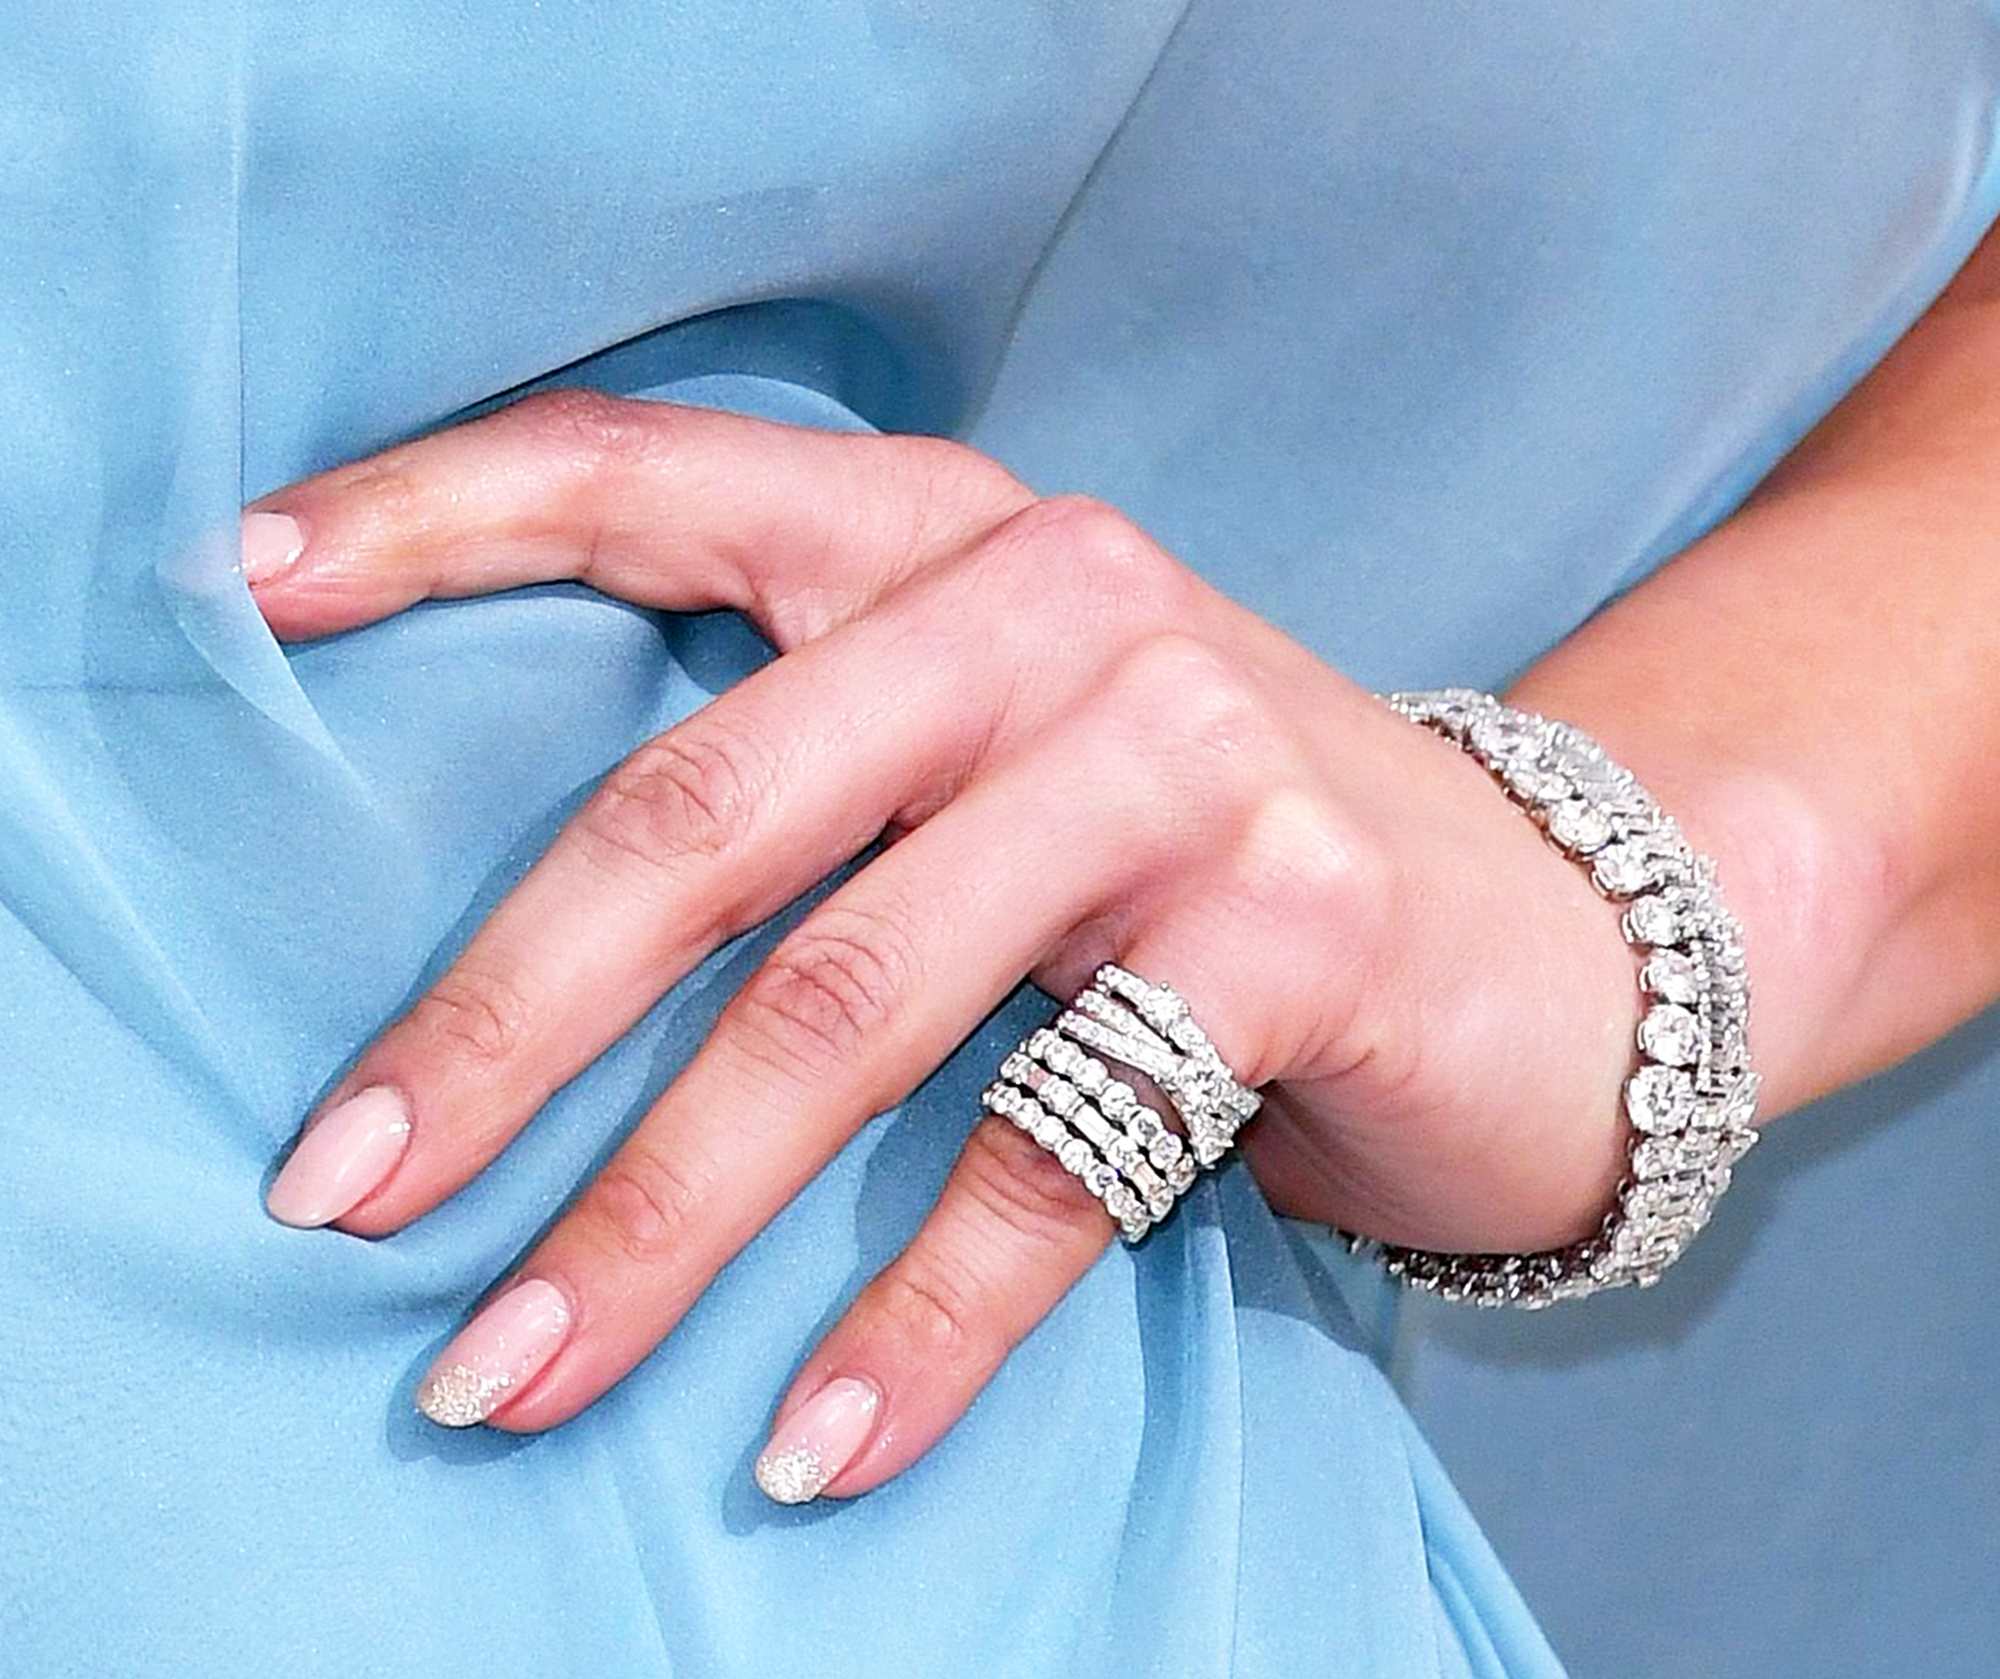 Blake Lively Wore Actual 24K Gold on Her Nails at the Met Gala 2017